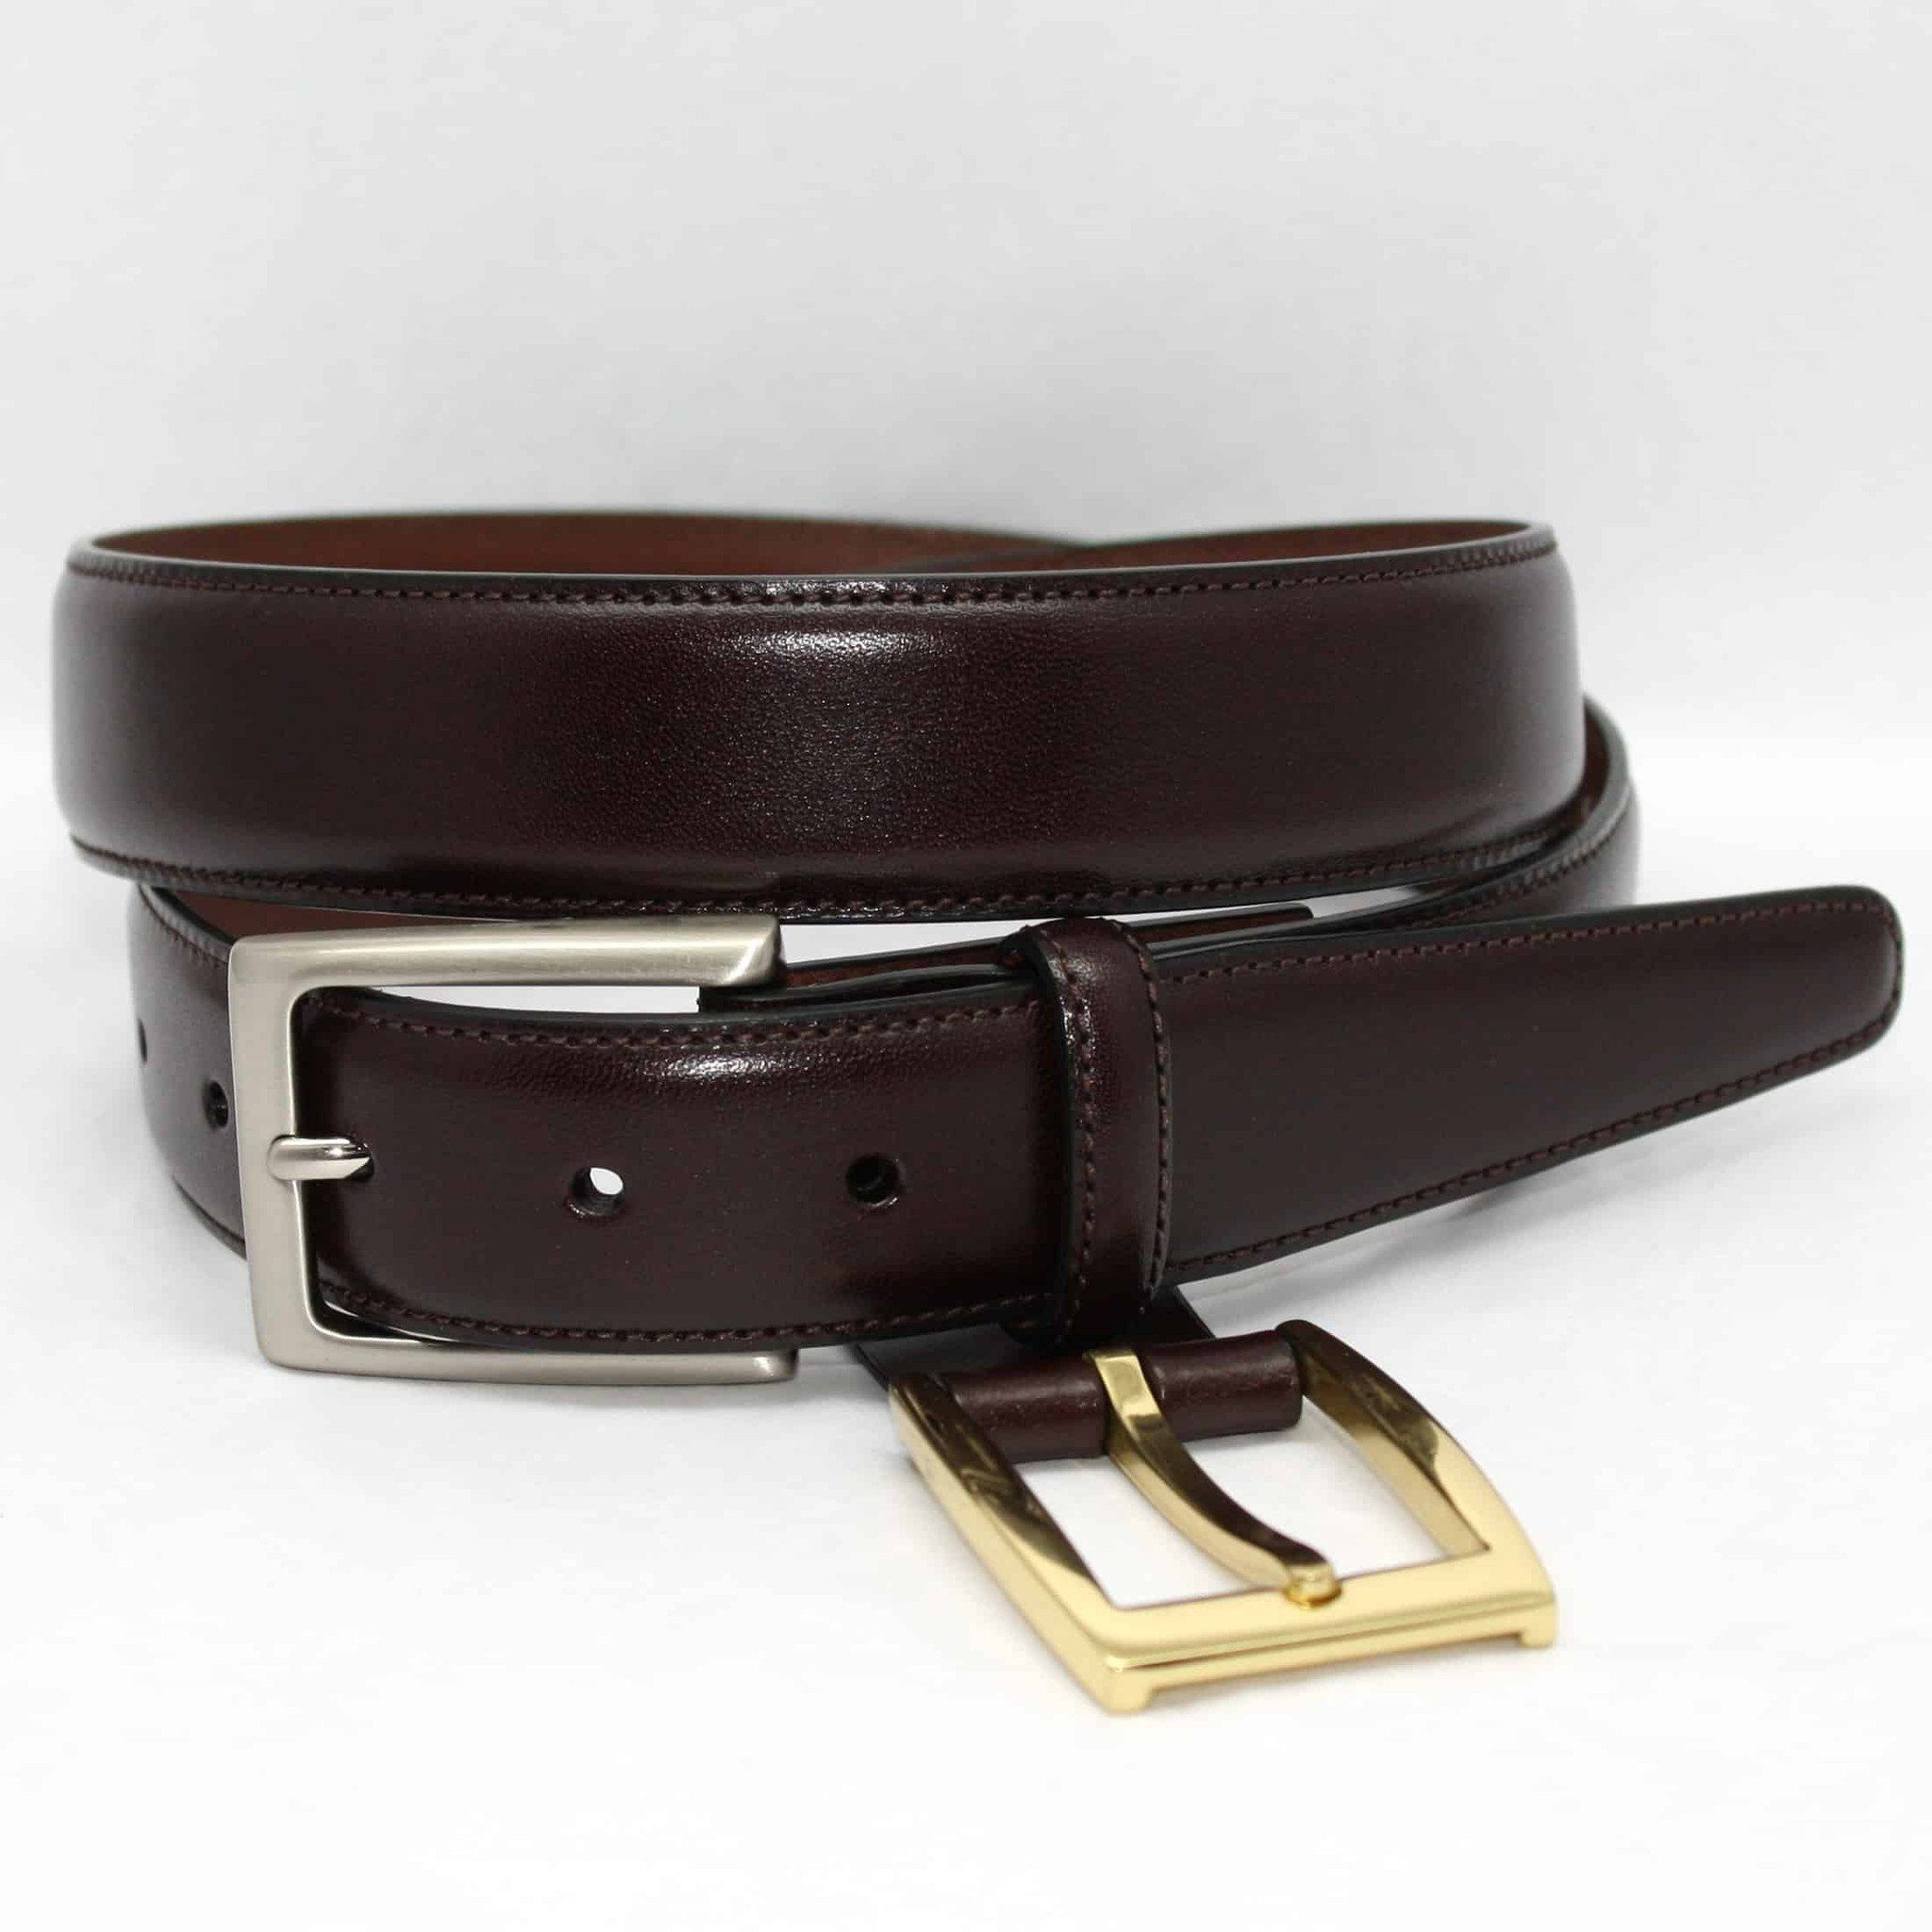 Glazed Kipskin Double Buckle Option Belt - Brown,BELT,GentRow.com, | GentRow.com